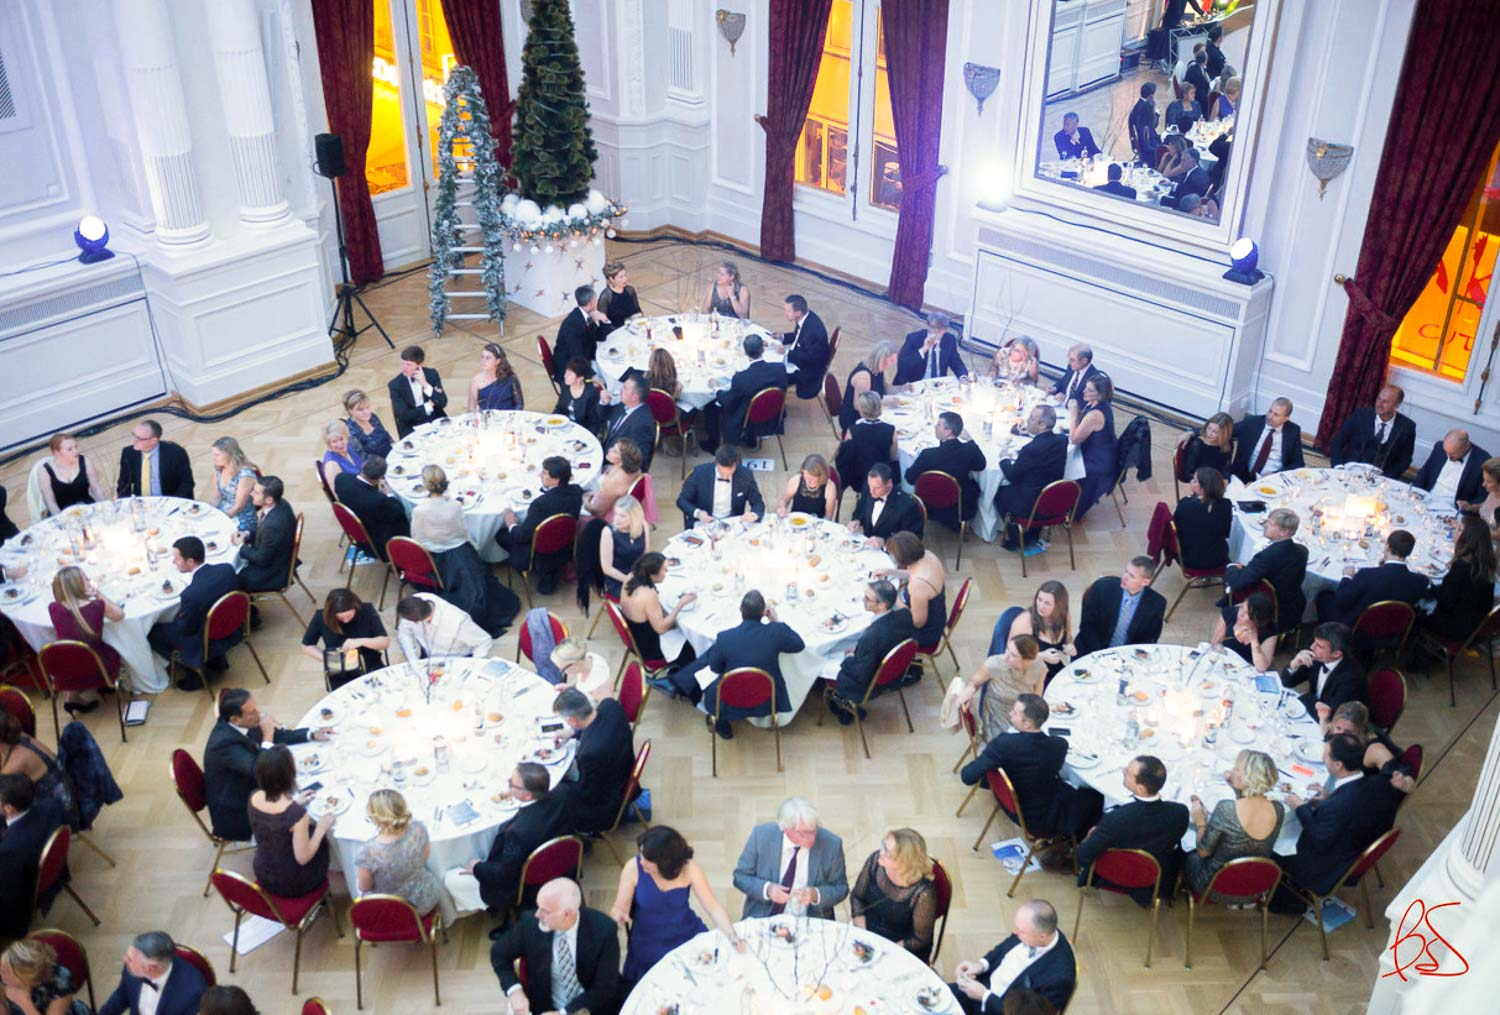 Make-A-Wish Luxembourg Winter Wonderland Gala and Auction 2016 at Cercle Cité in Luxembourg City